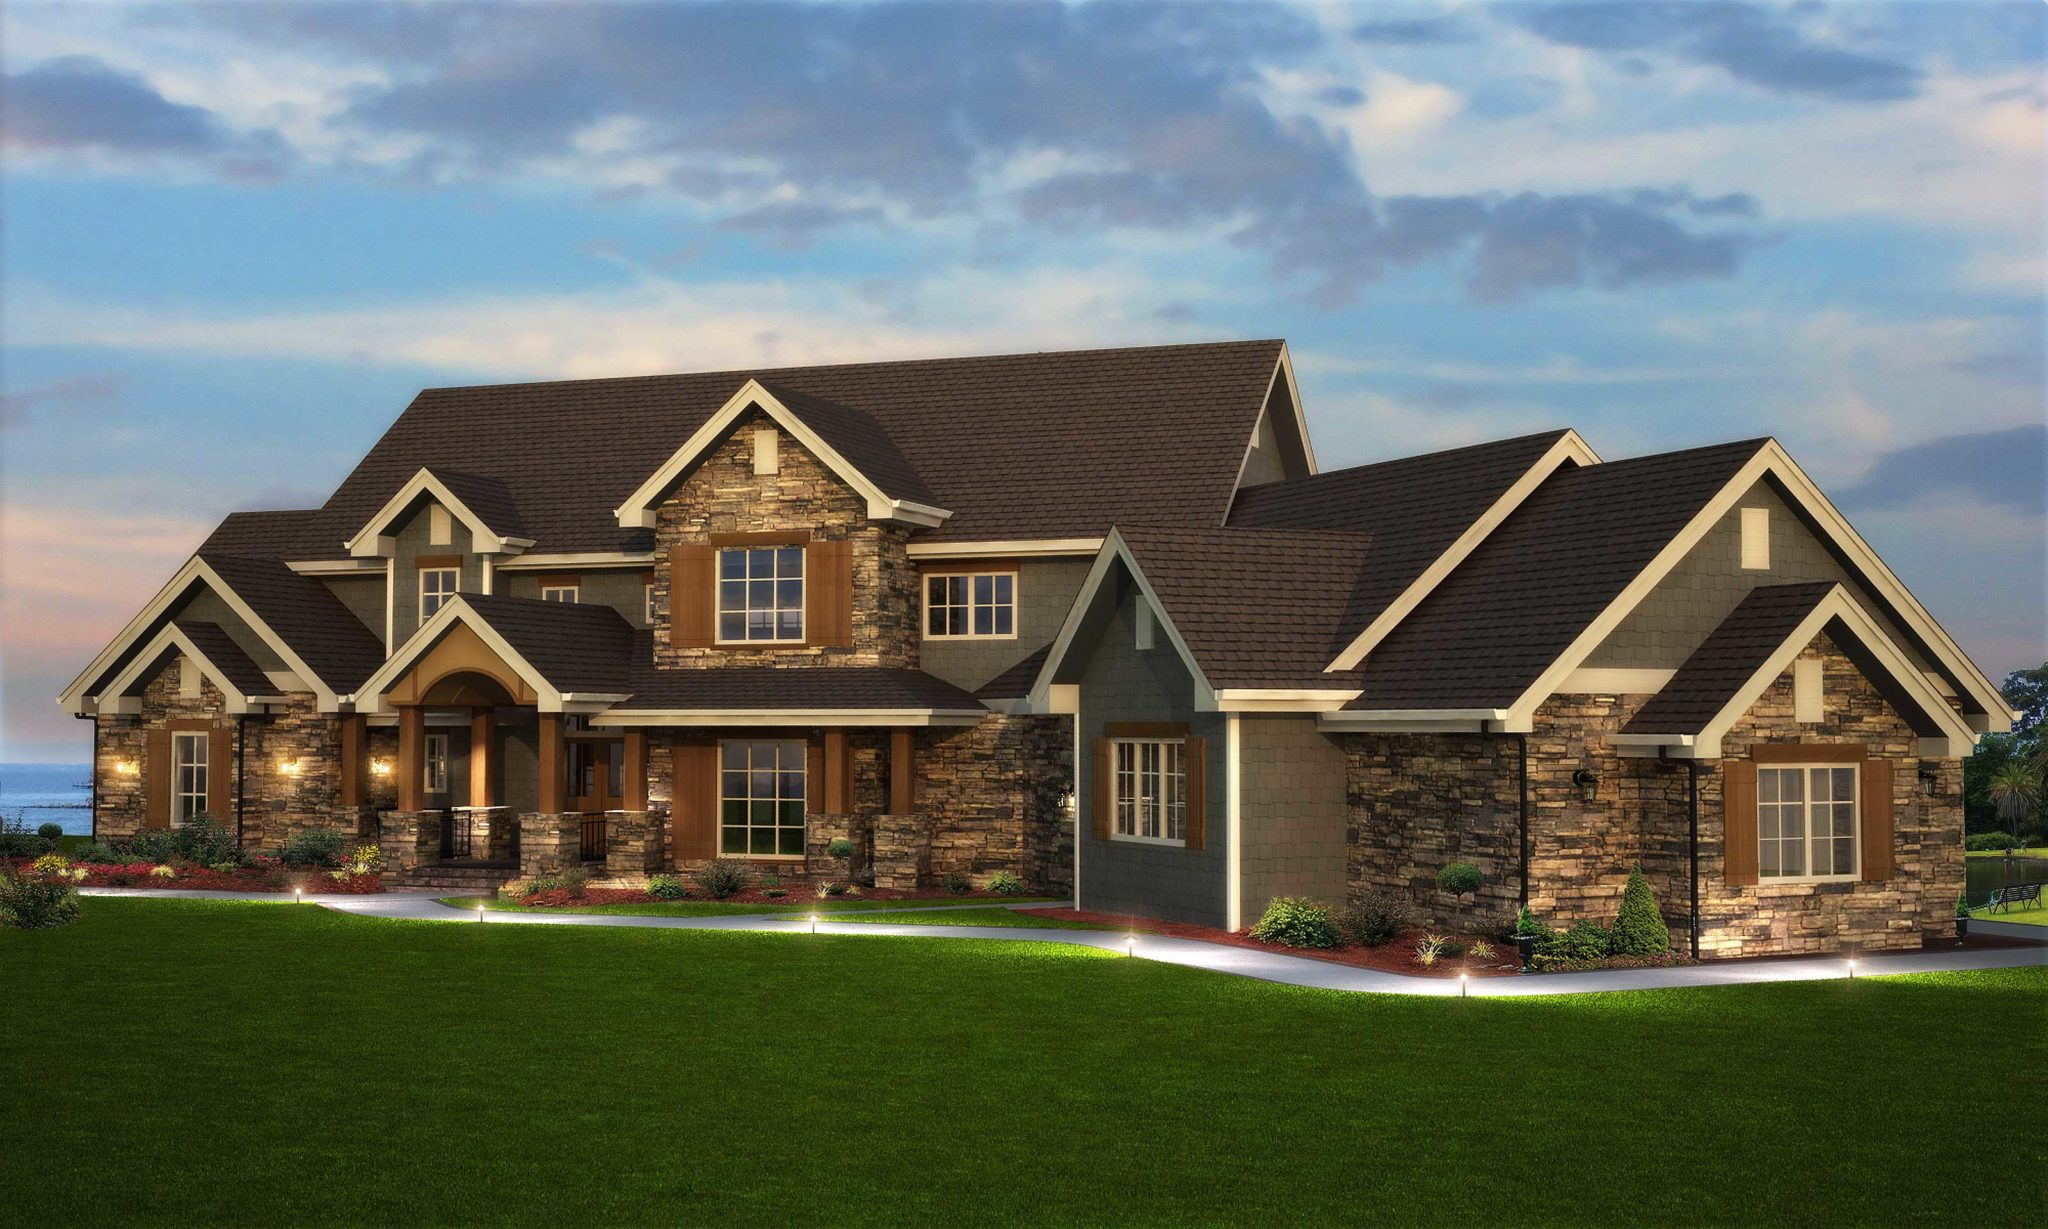 affordable luxury homes in nashville tennessee